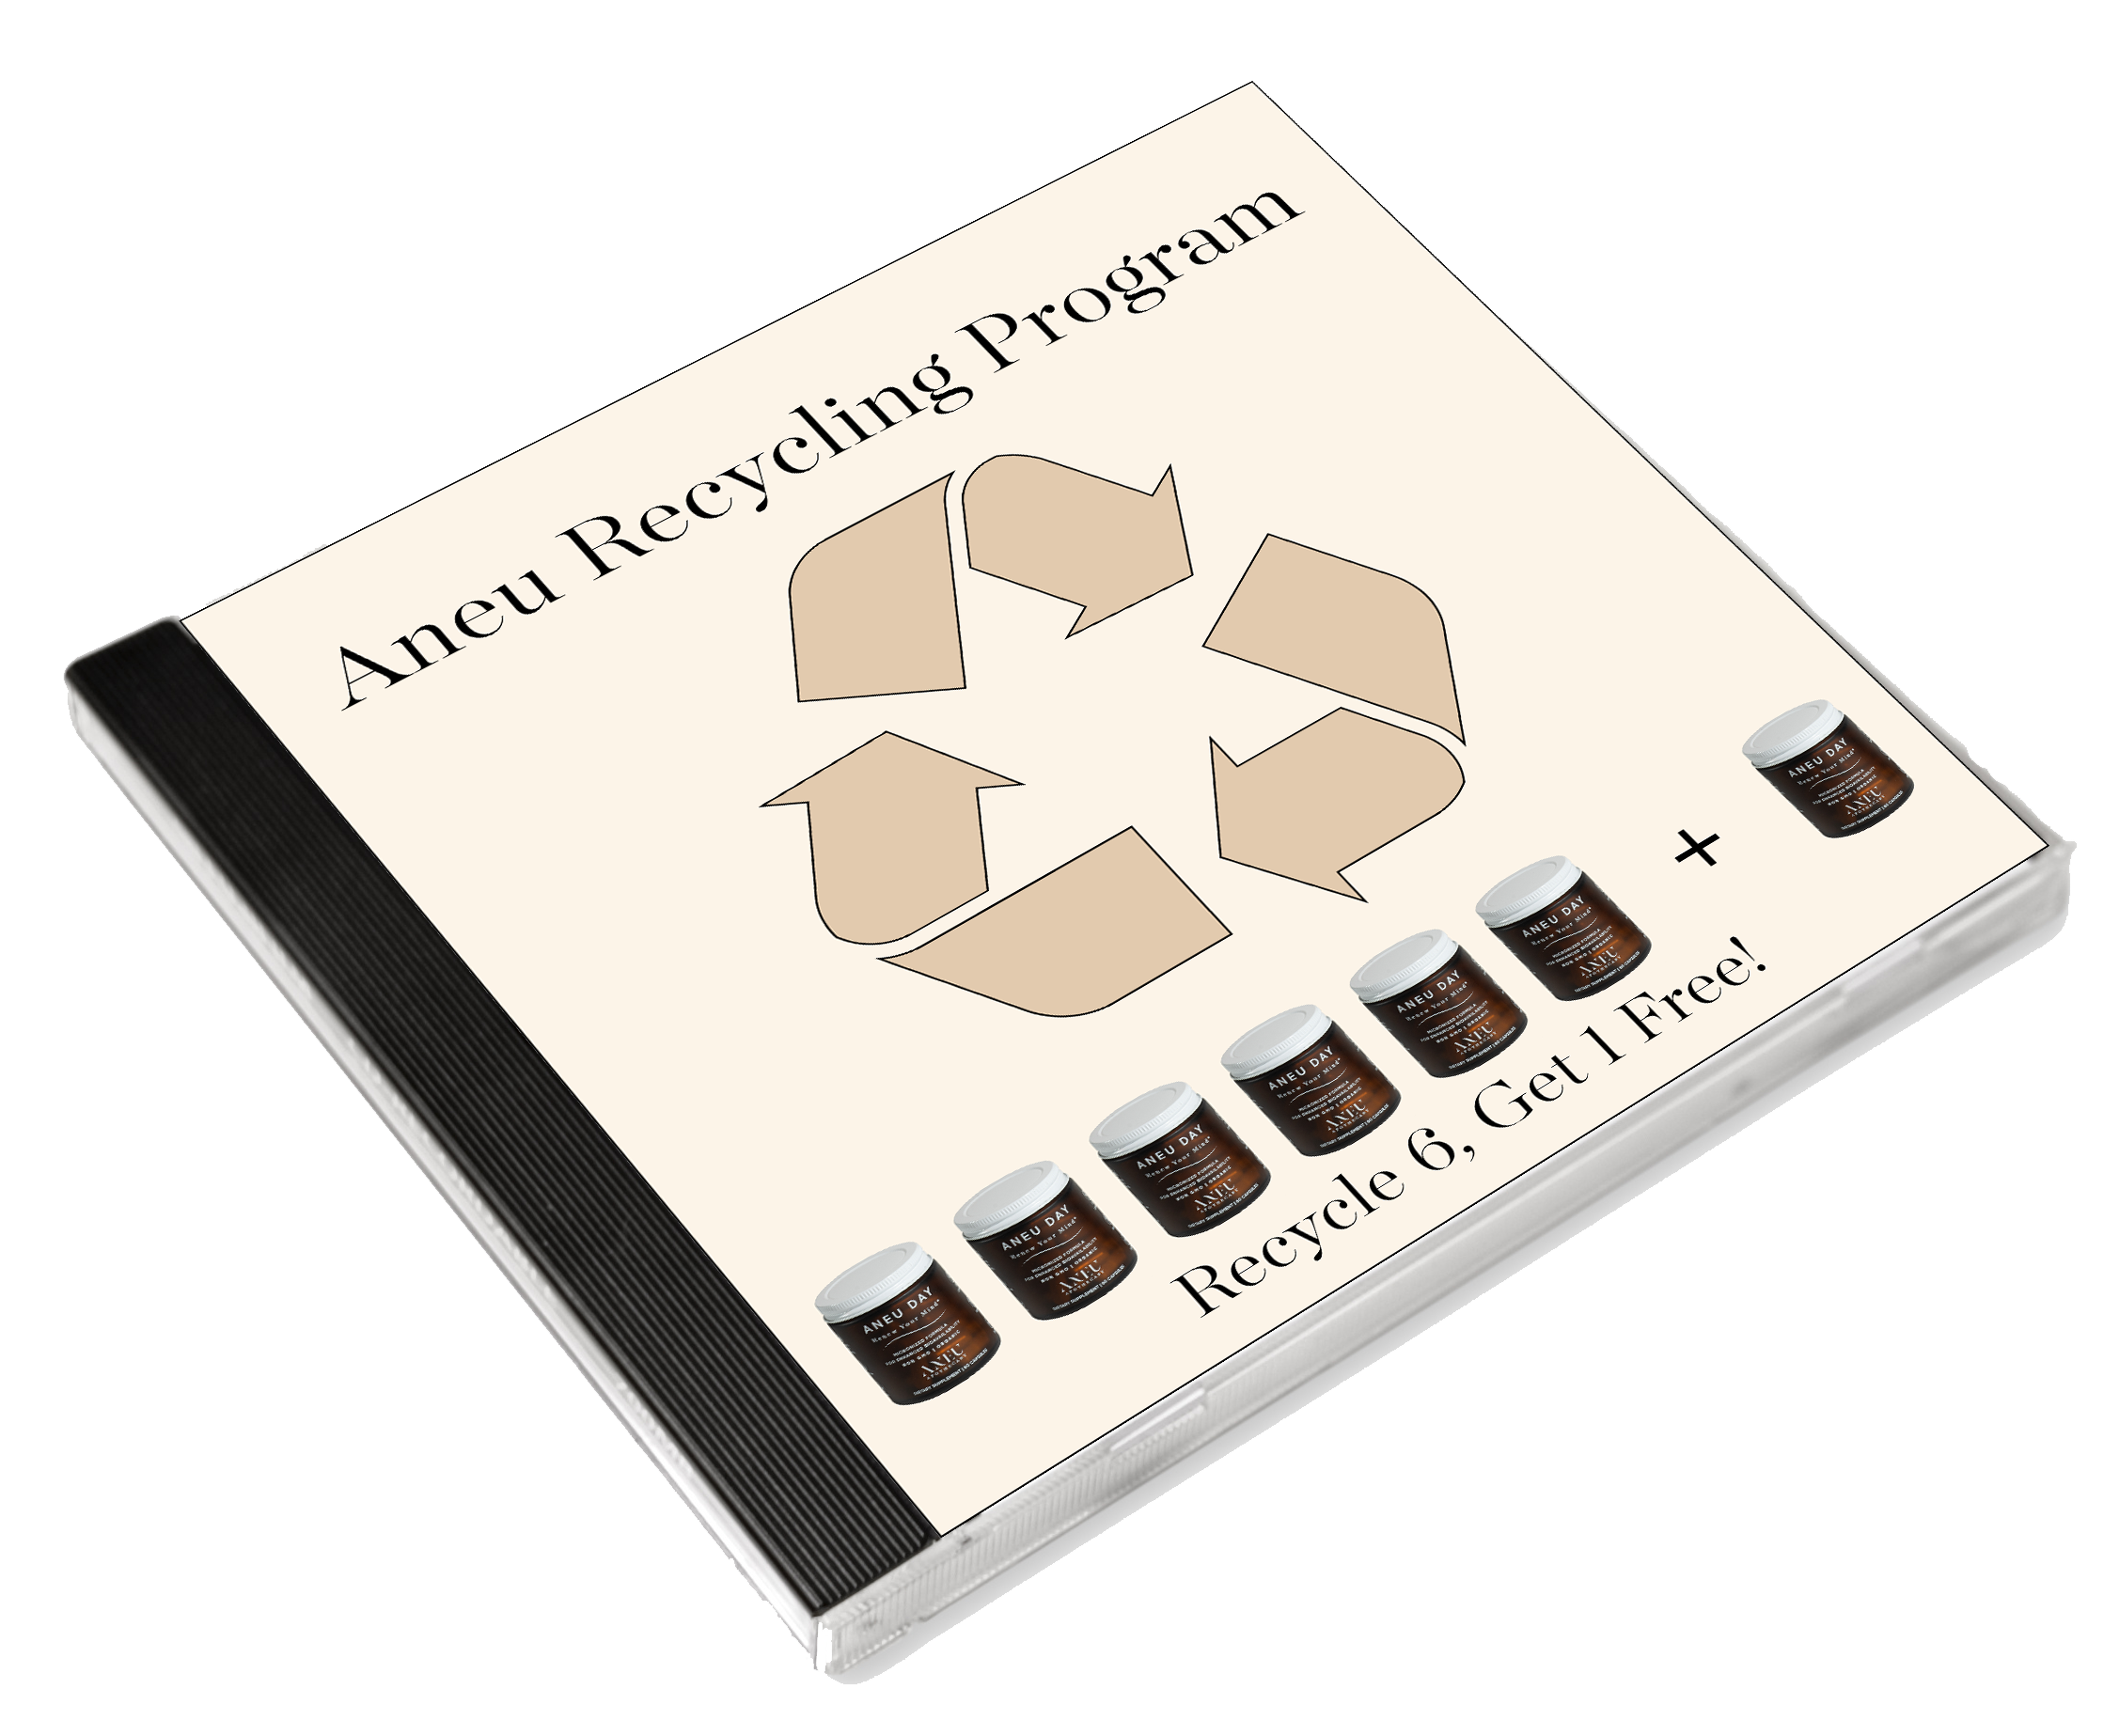 aneu recycling program on a CD case